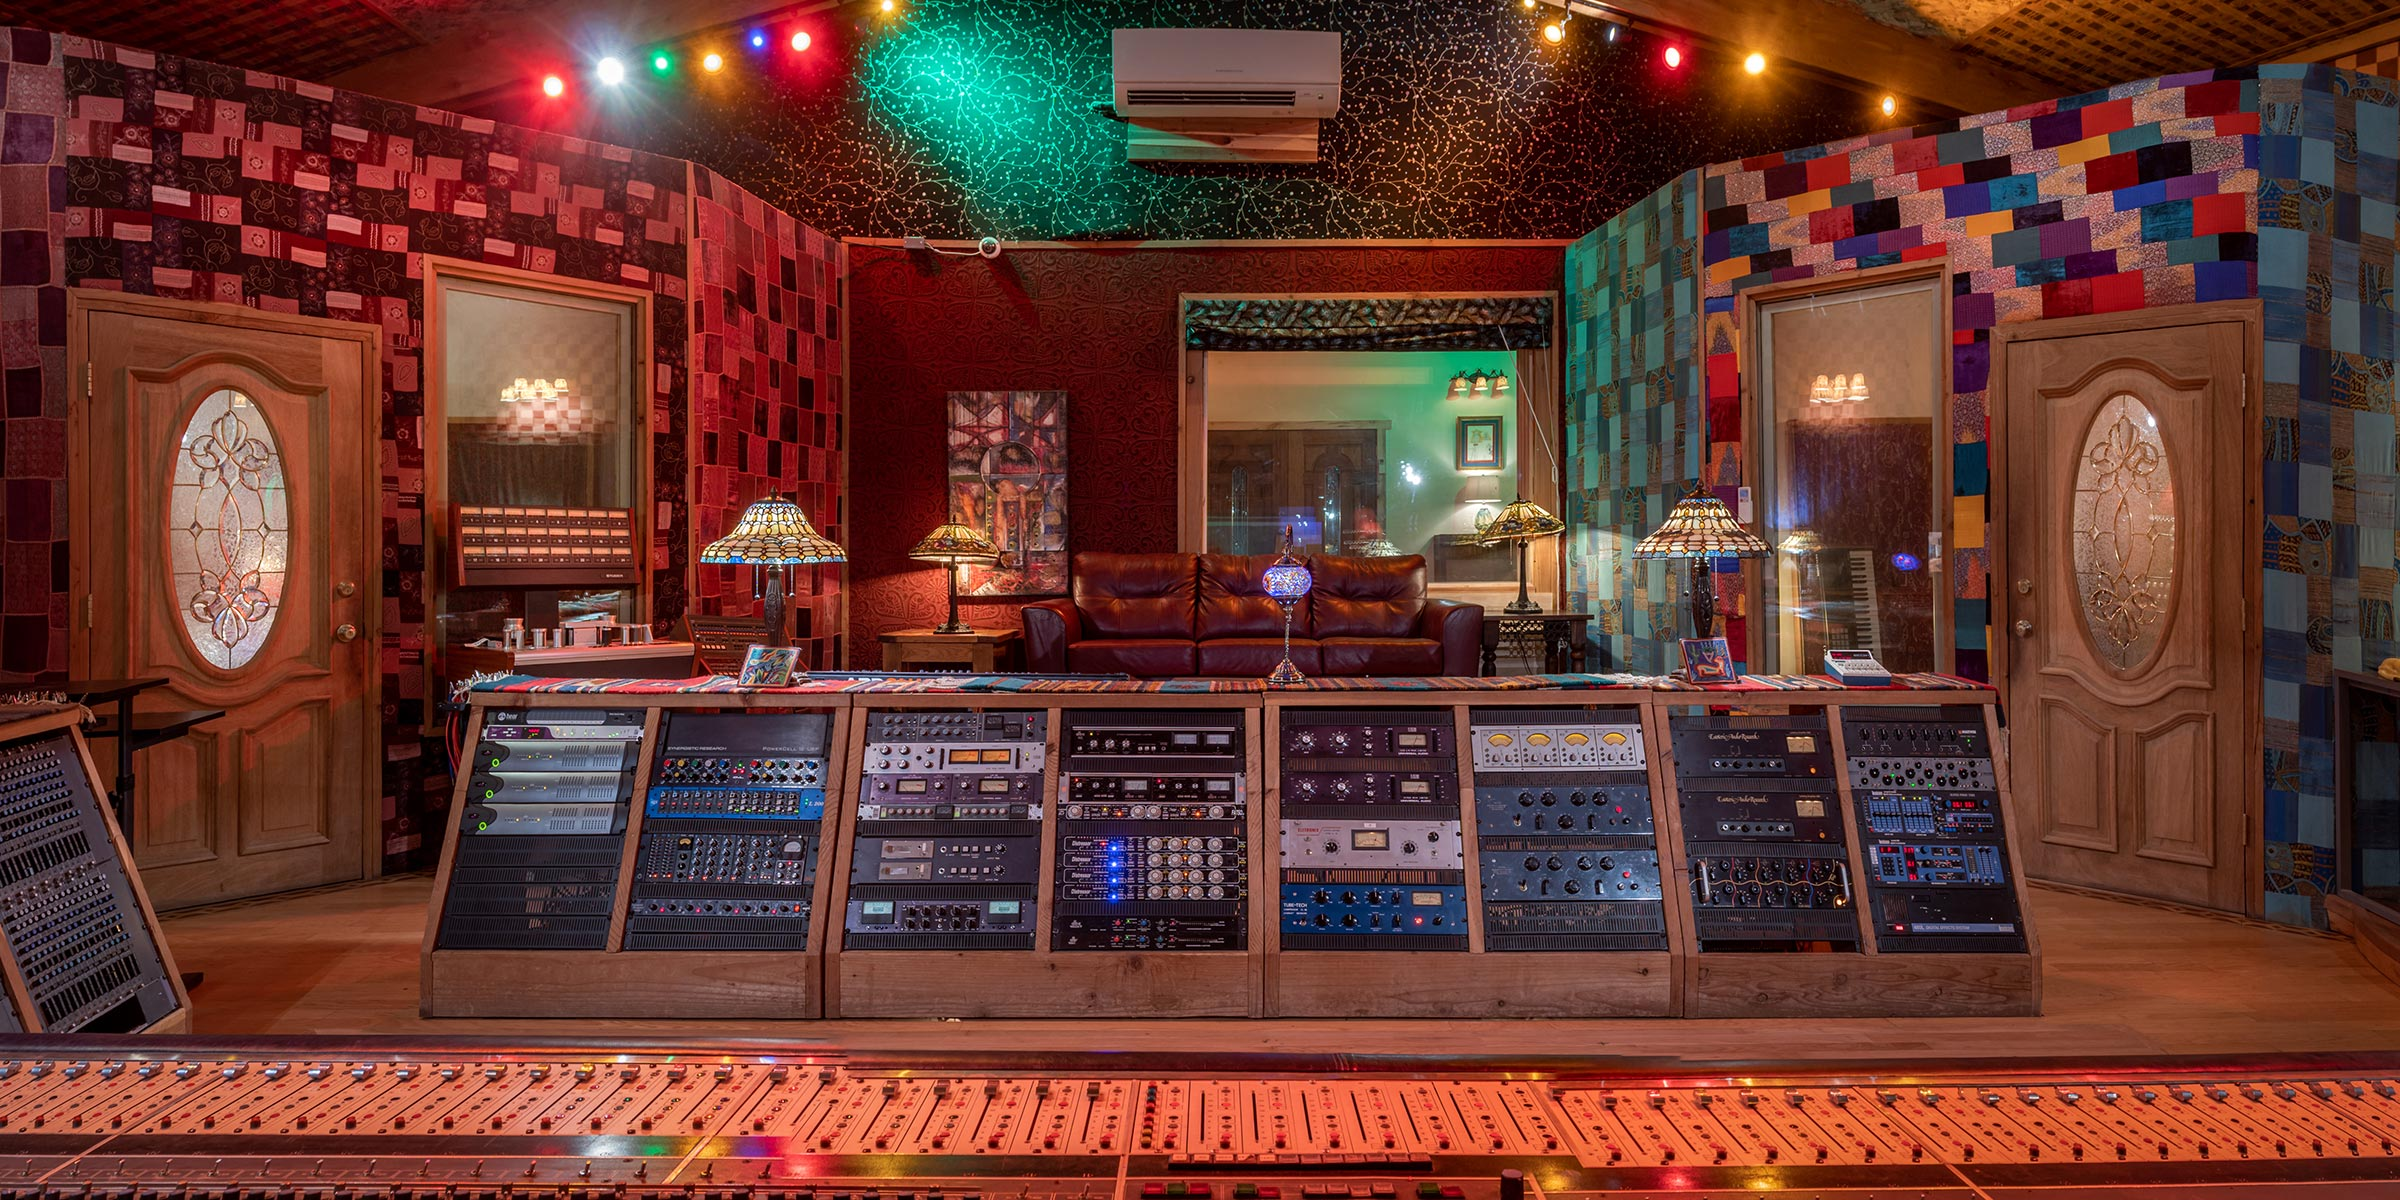 Neve Control Room looking from the console